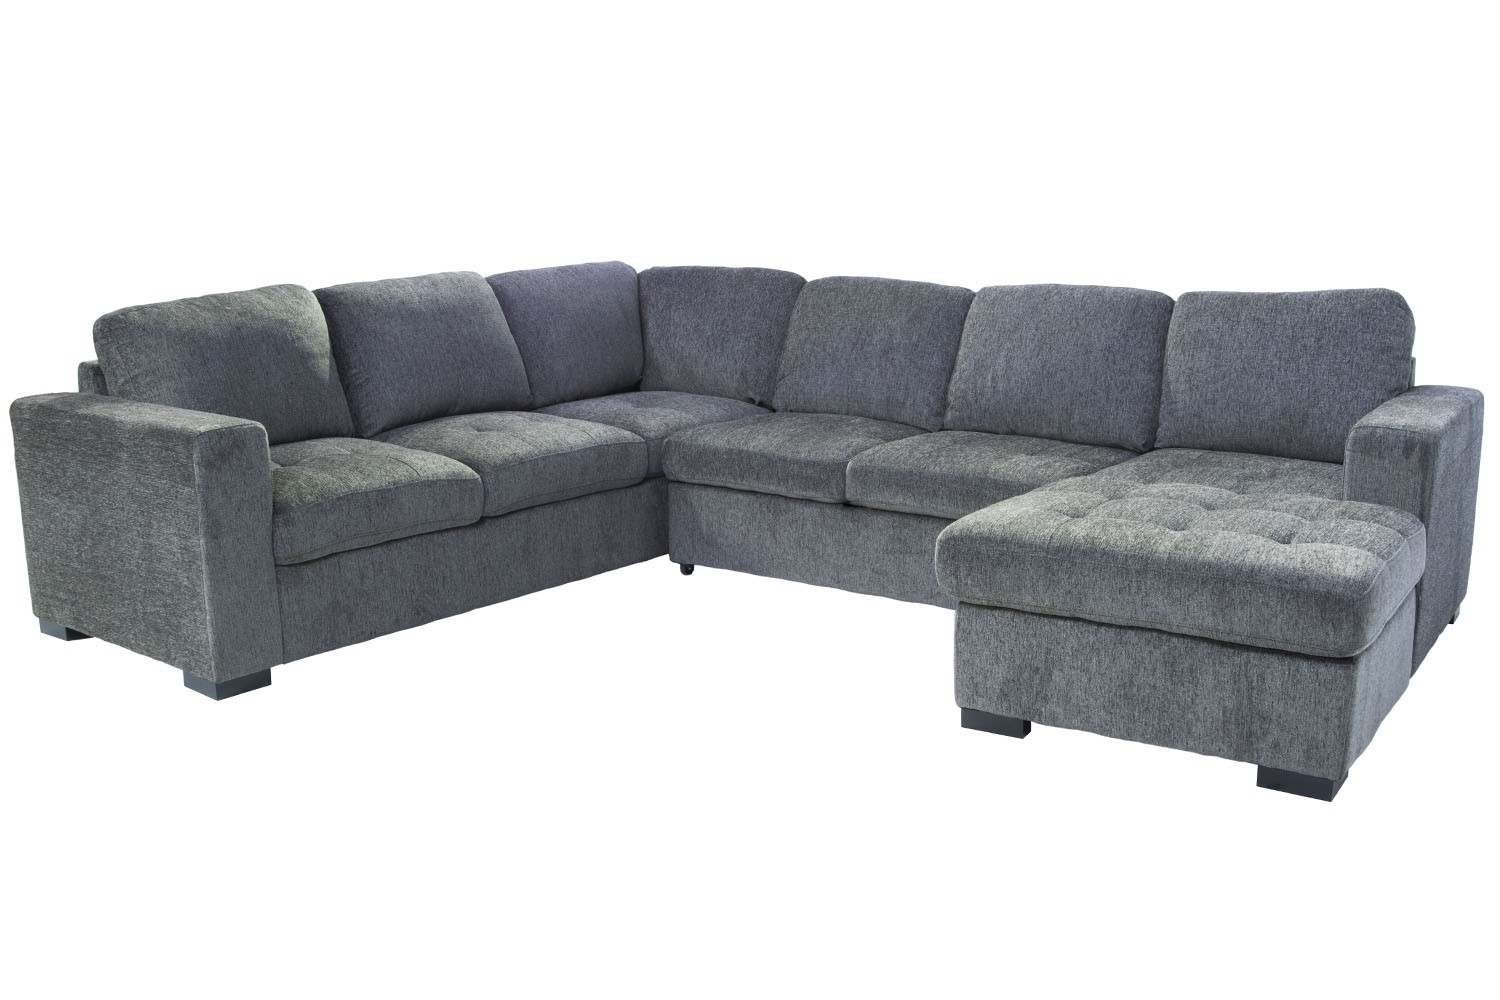 Claire 3-Piece Right-Facing Chaise Sectional In Gray | Save Mor inside Aquarius Dark Grey 2 Piece Sectionals With Laf Chaise (Image 11 of 30)